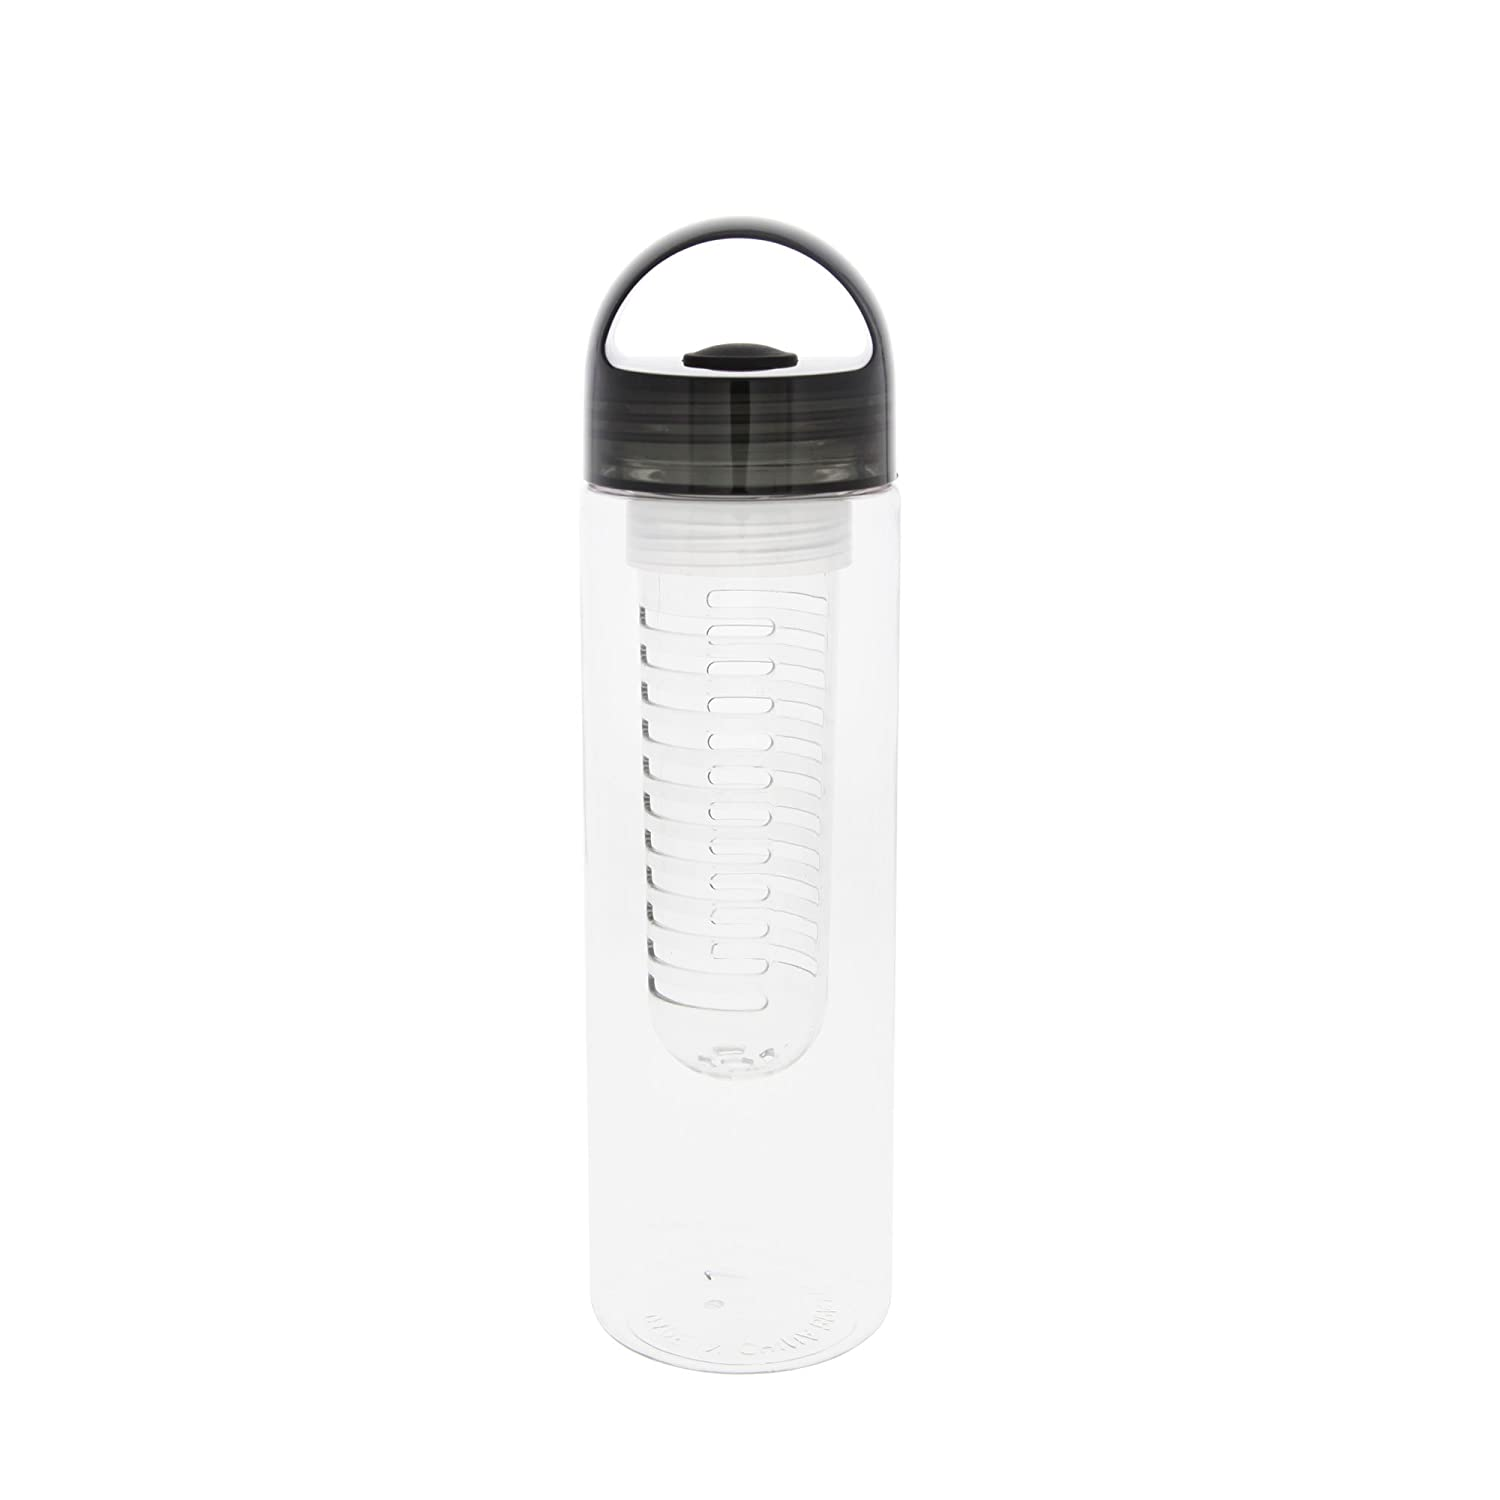 Black 23oz Fruit Infuser Water Bottle with Loop Cap BPA free